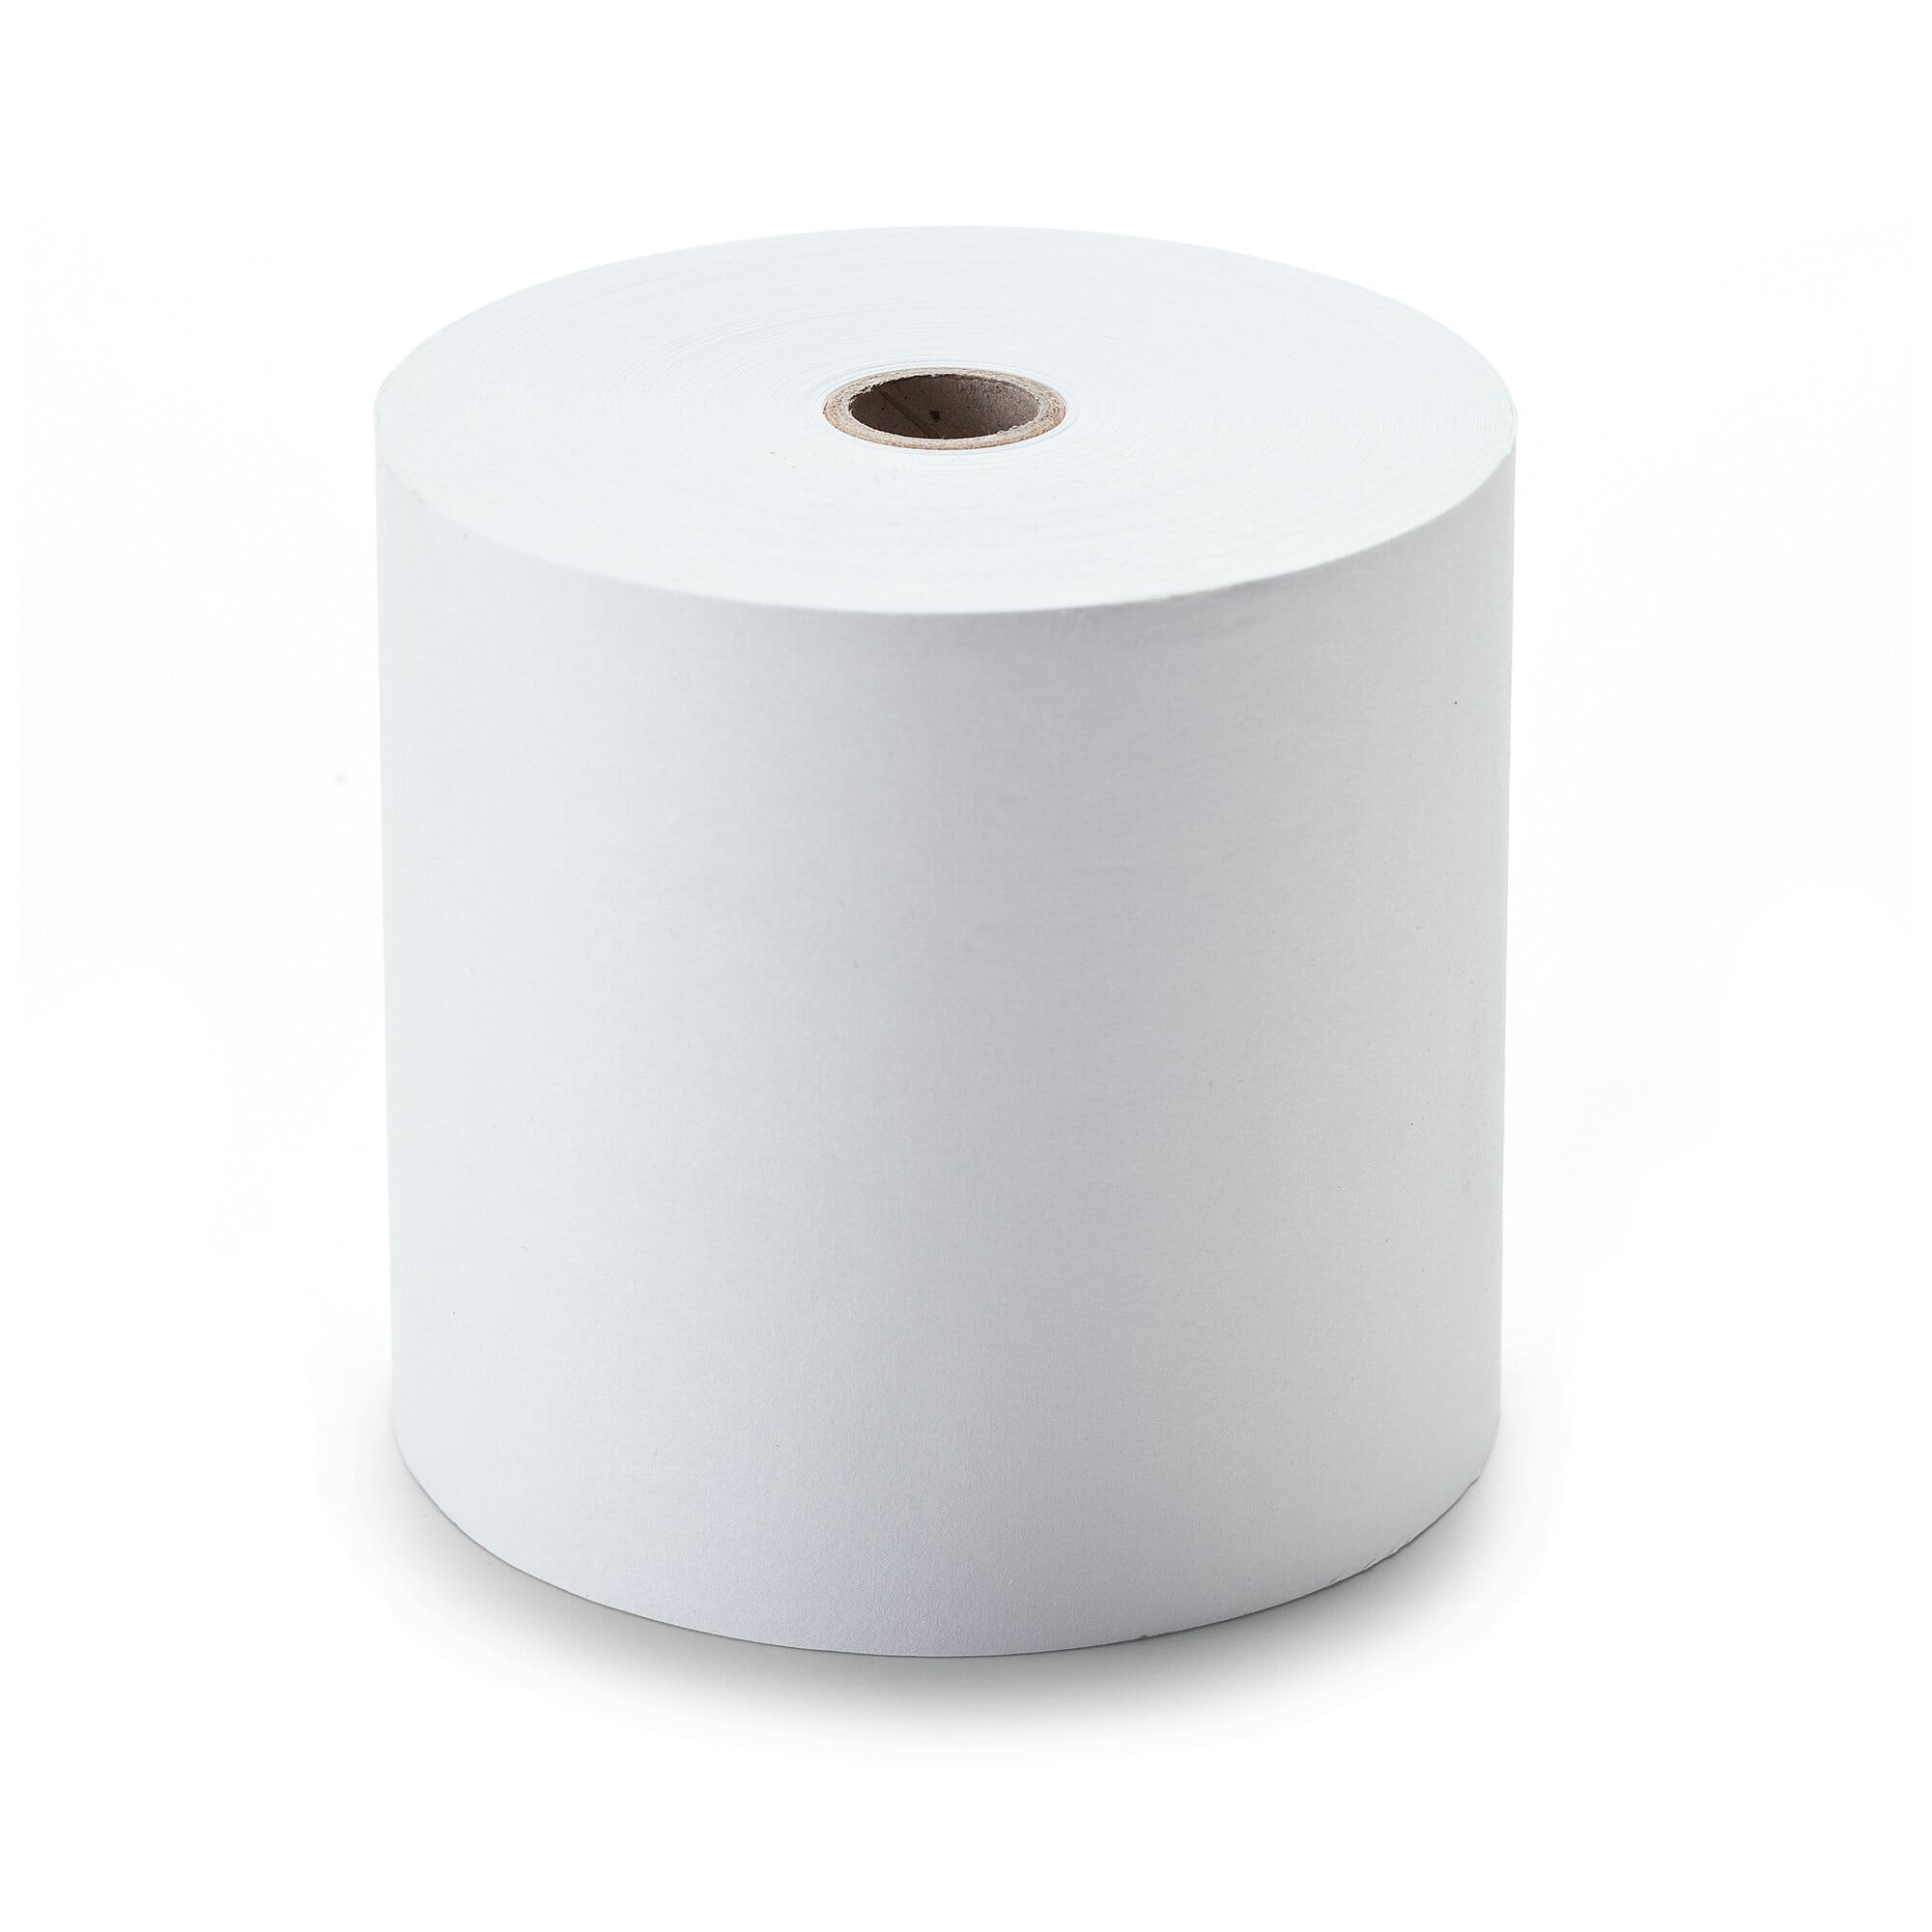 Toilet a is paper the roll of what girth Average Girth